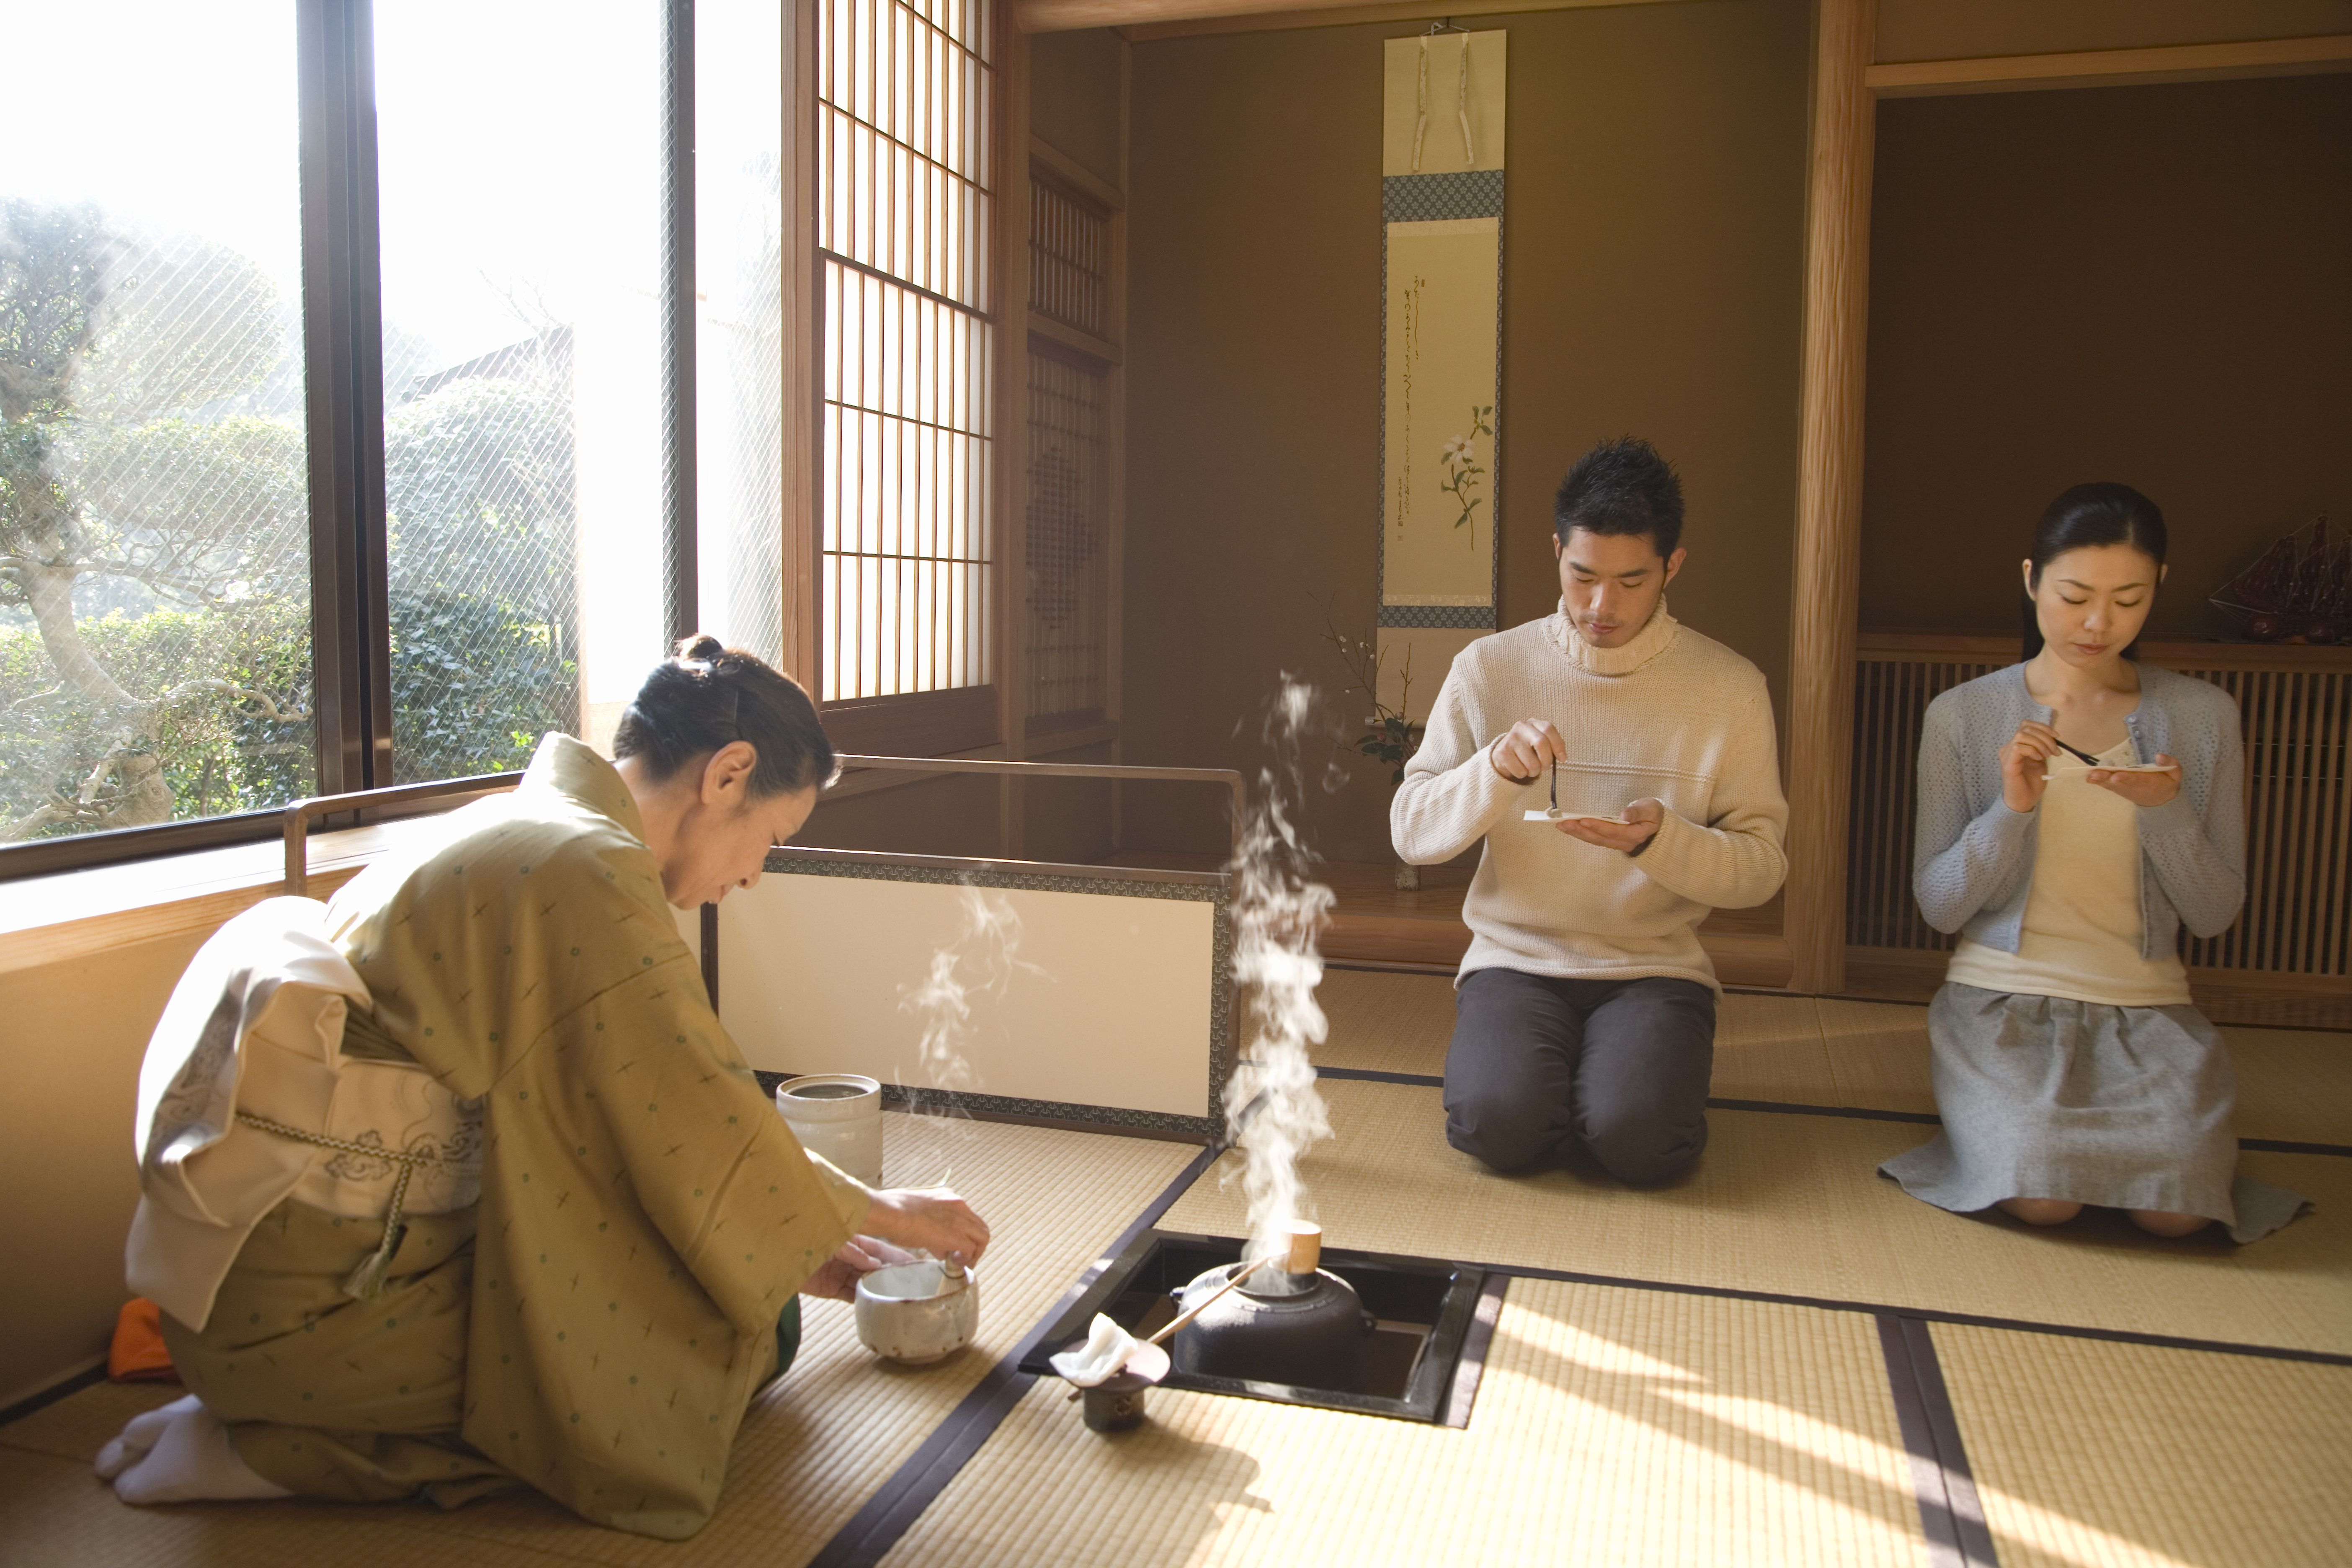 Couple attending Japanese tea ceremony, front view, side view, Japan